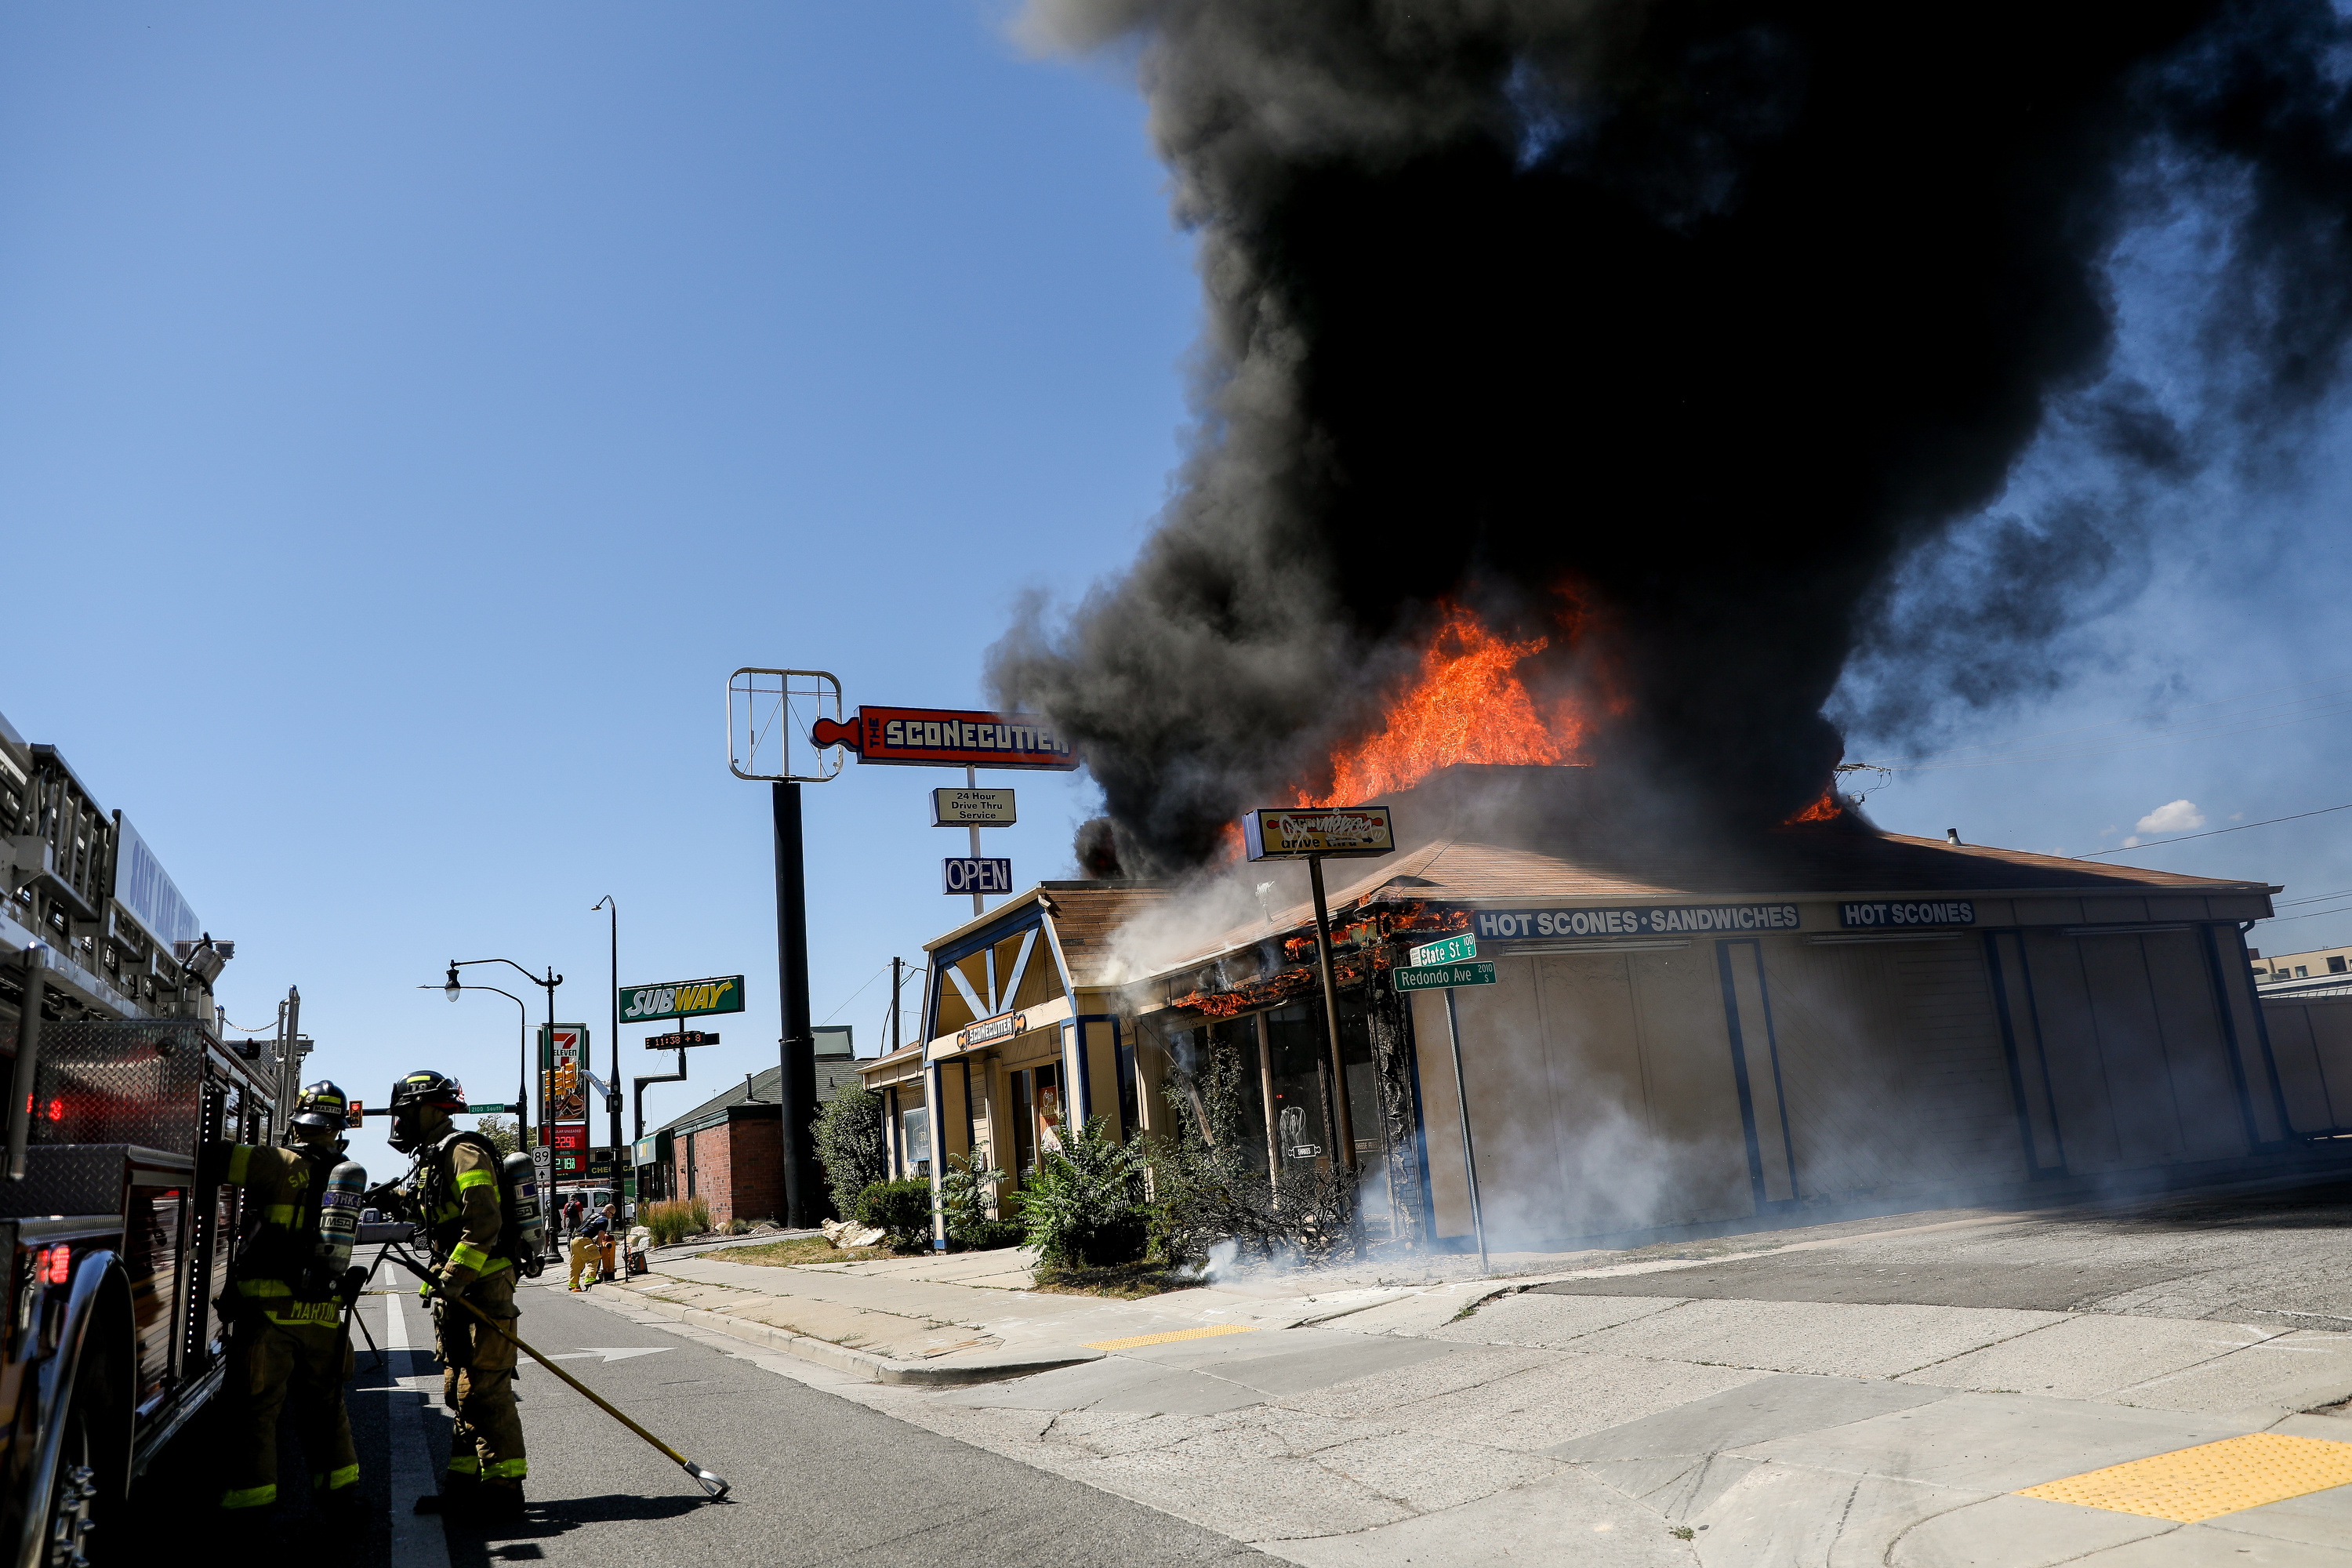 Firefighters arrive on scene as flames leap out of the roof of the old Sconecutter at 2040 S. State in Salt Lake City on Thursday, July 2, 2020. The blaze destroyed the vacant restaurant.